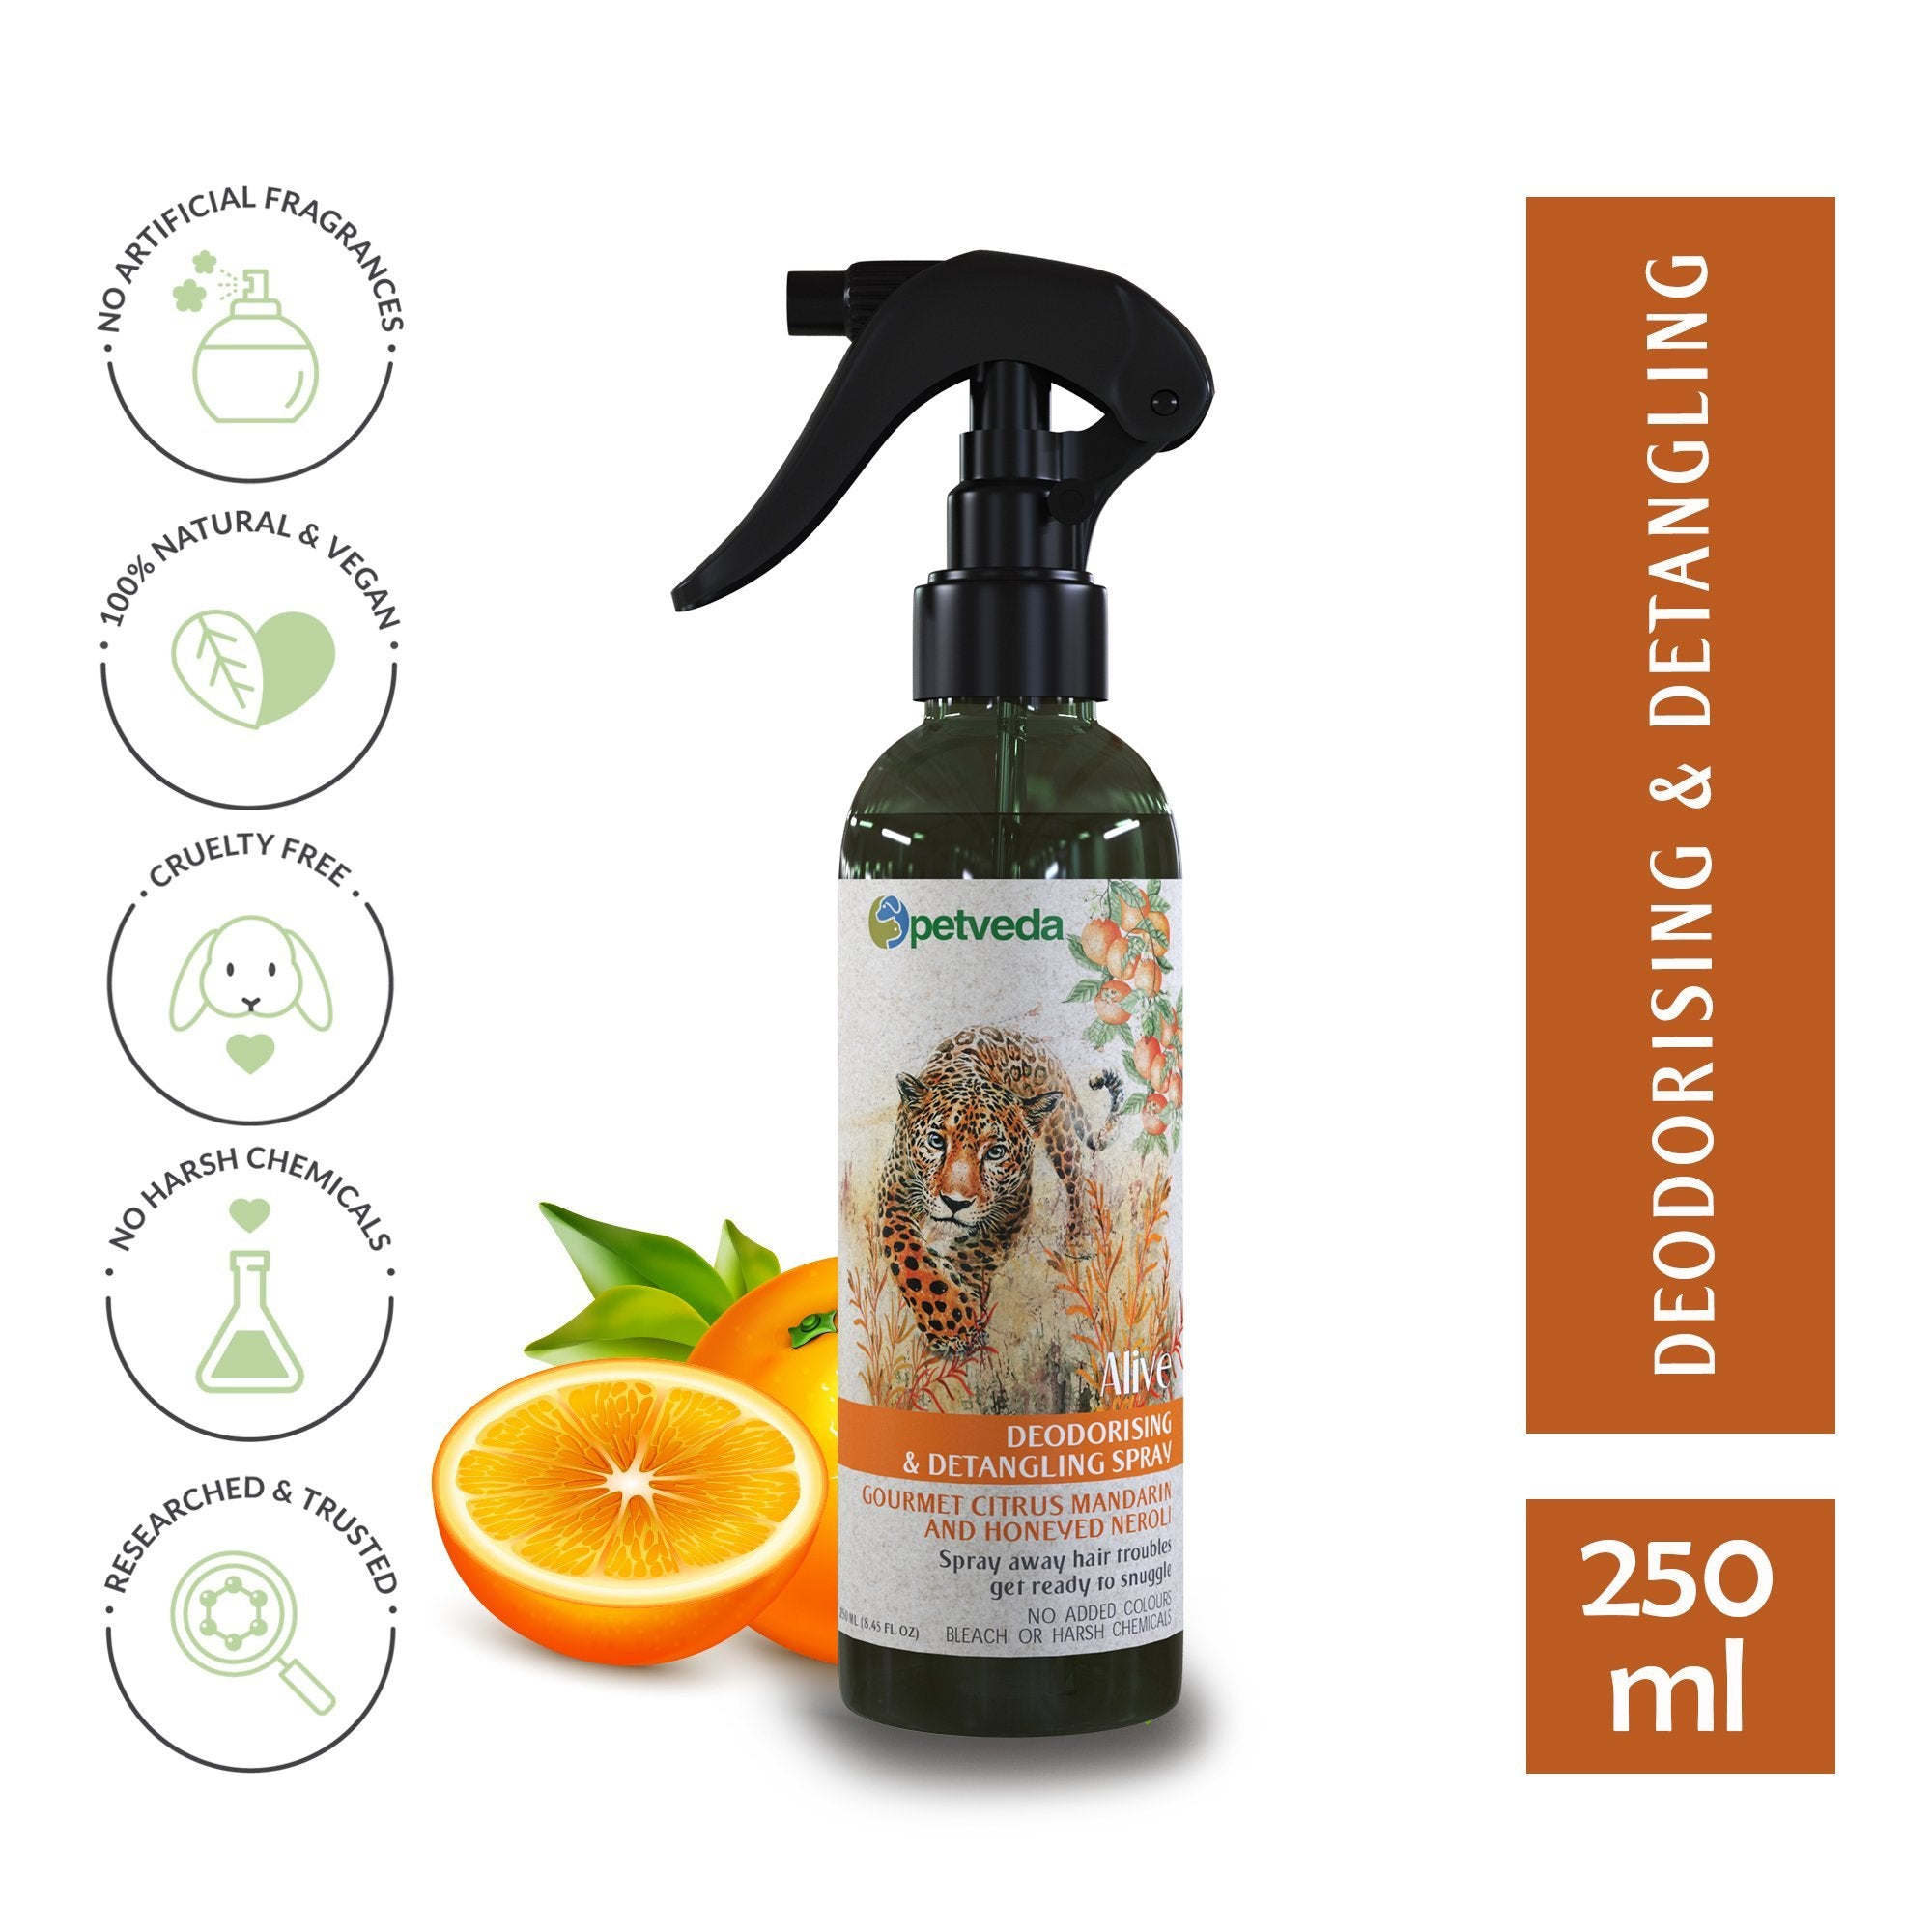 Alive - Gourmet Citrus Mandarin & Honeyed Neroli Deodorizing Spray 250ml